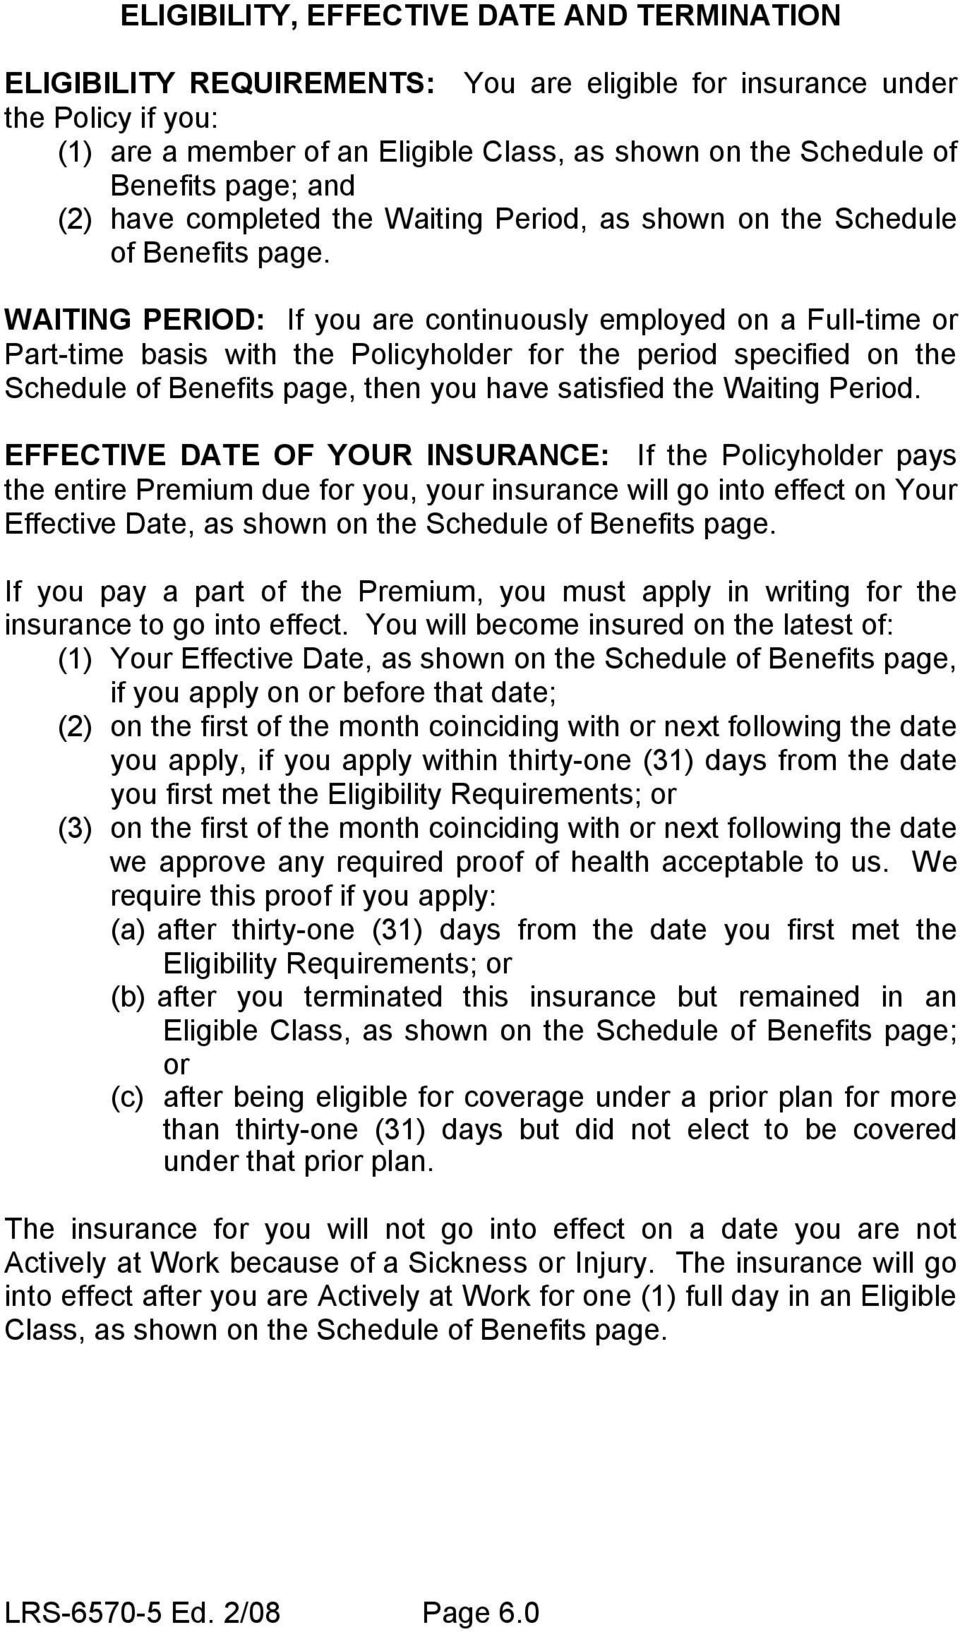 WAITING PERIOD: If you are continuously employed on a Full-time or Part-time basis with the Policyholder for the period specified on the Schedule of Benefits page, then you have satisfied the Waiting